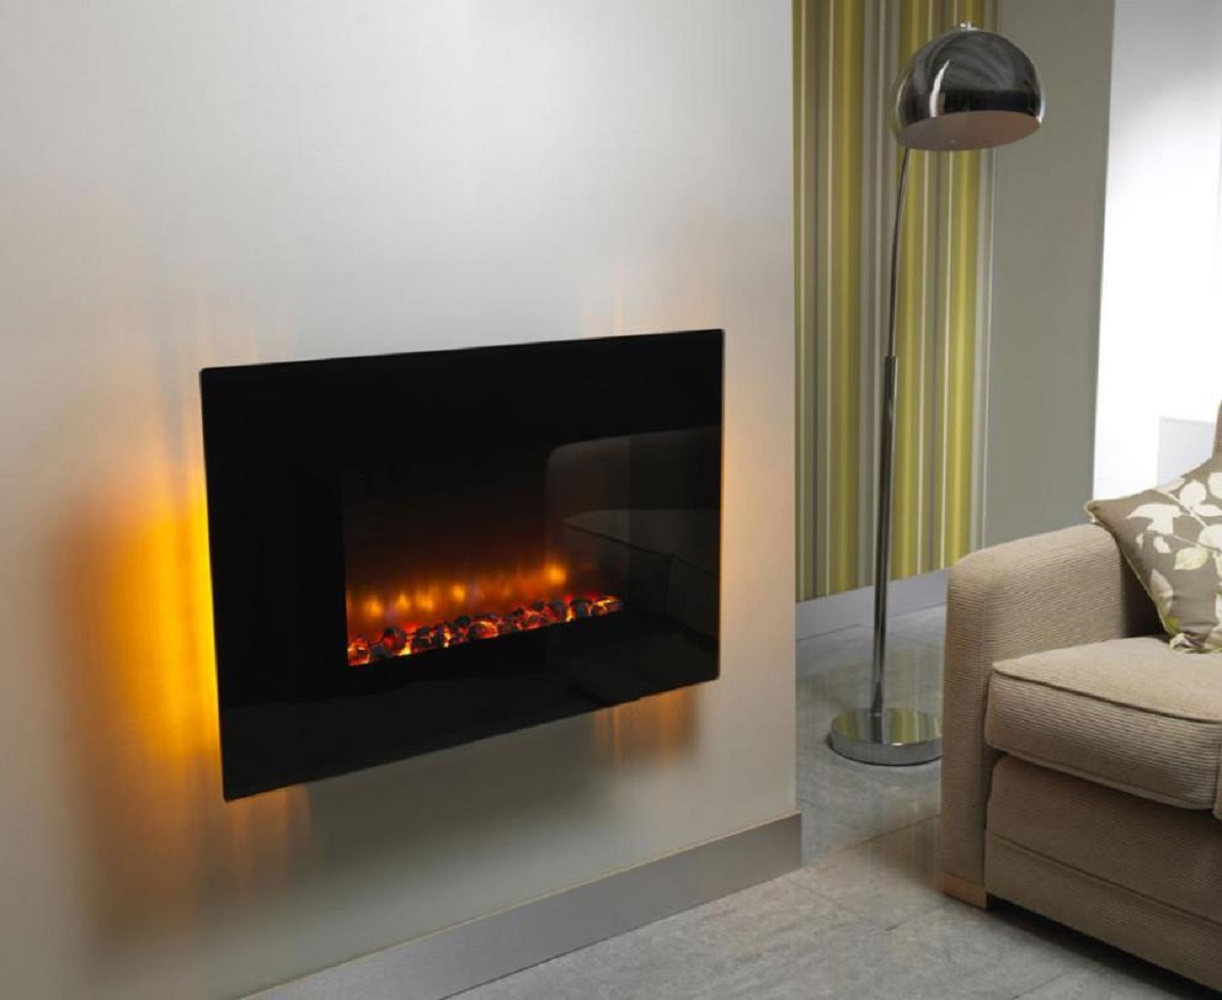 wallmounted indoor electric fireplace » gadget flow - wallmounted indoor electric fireplace